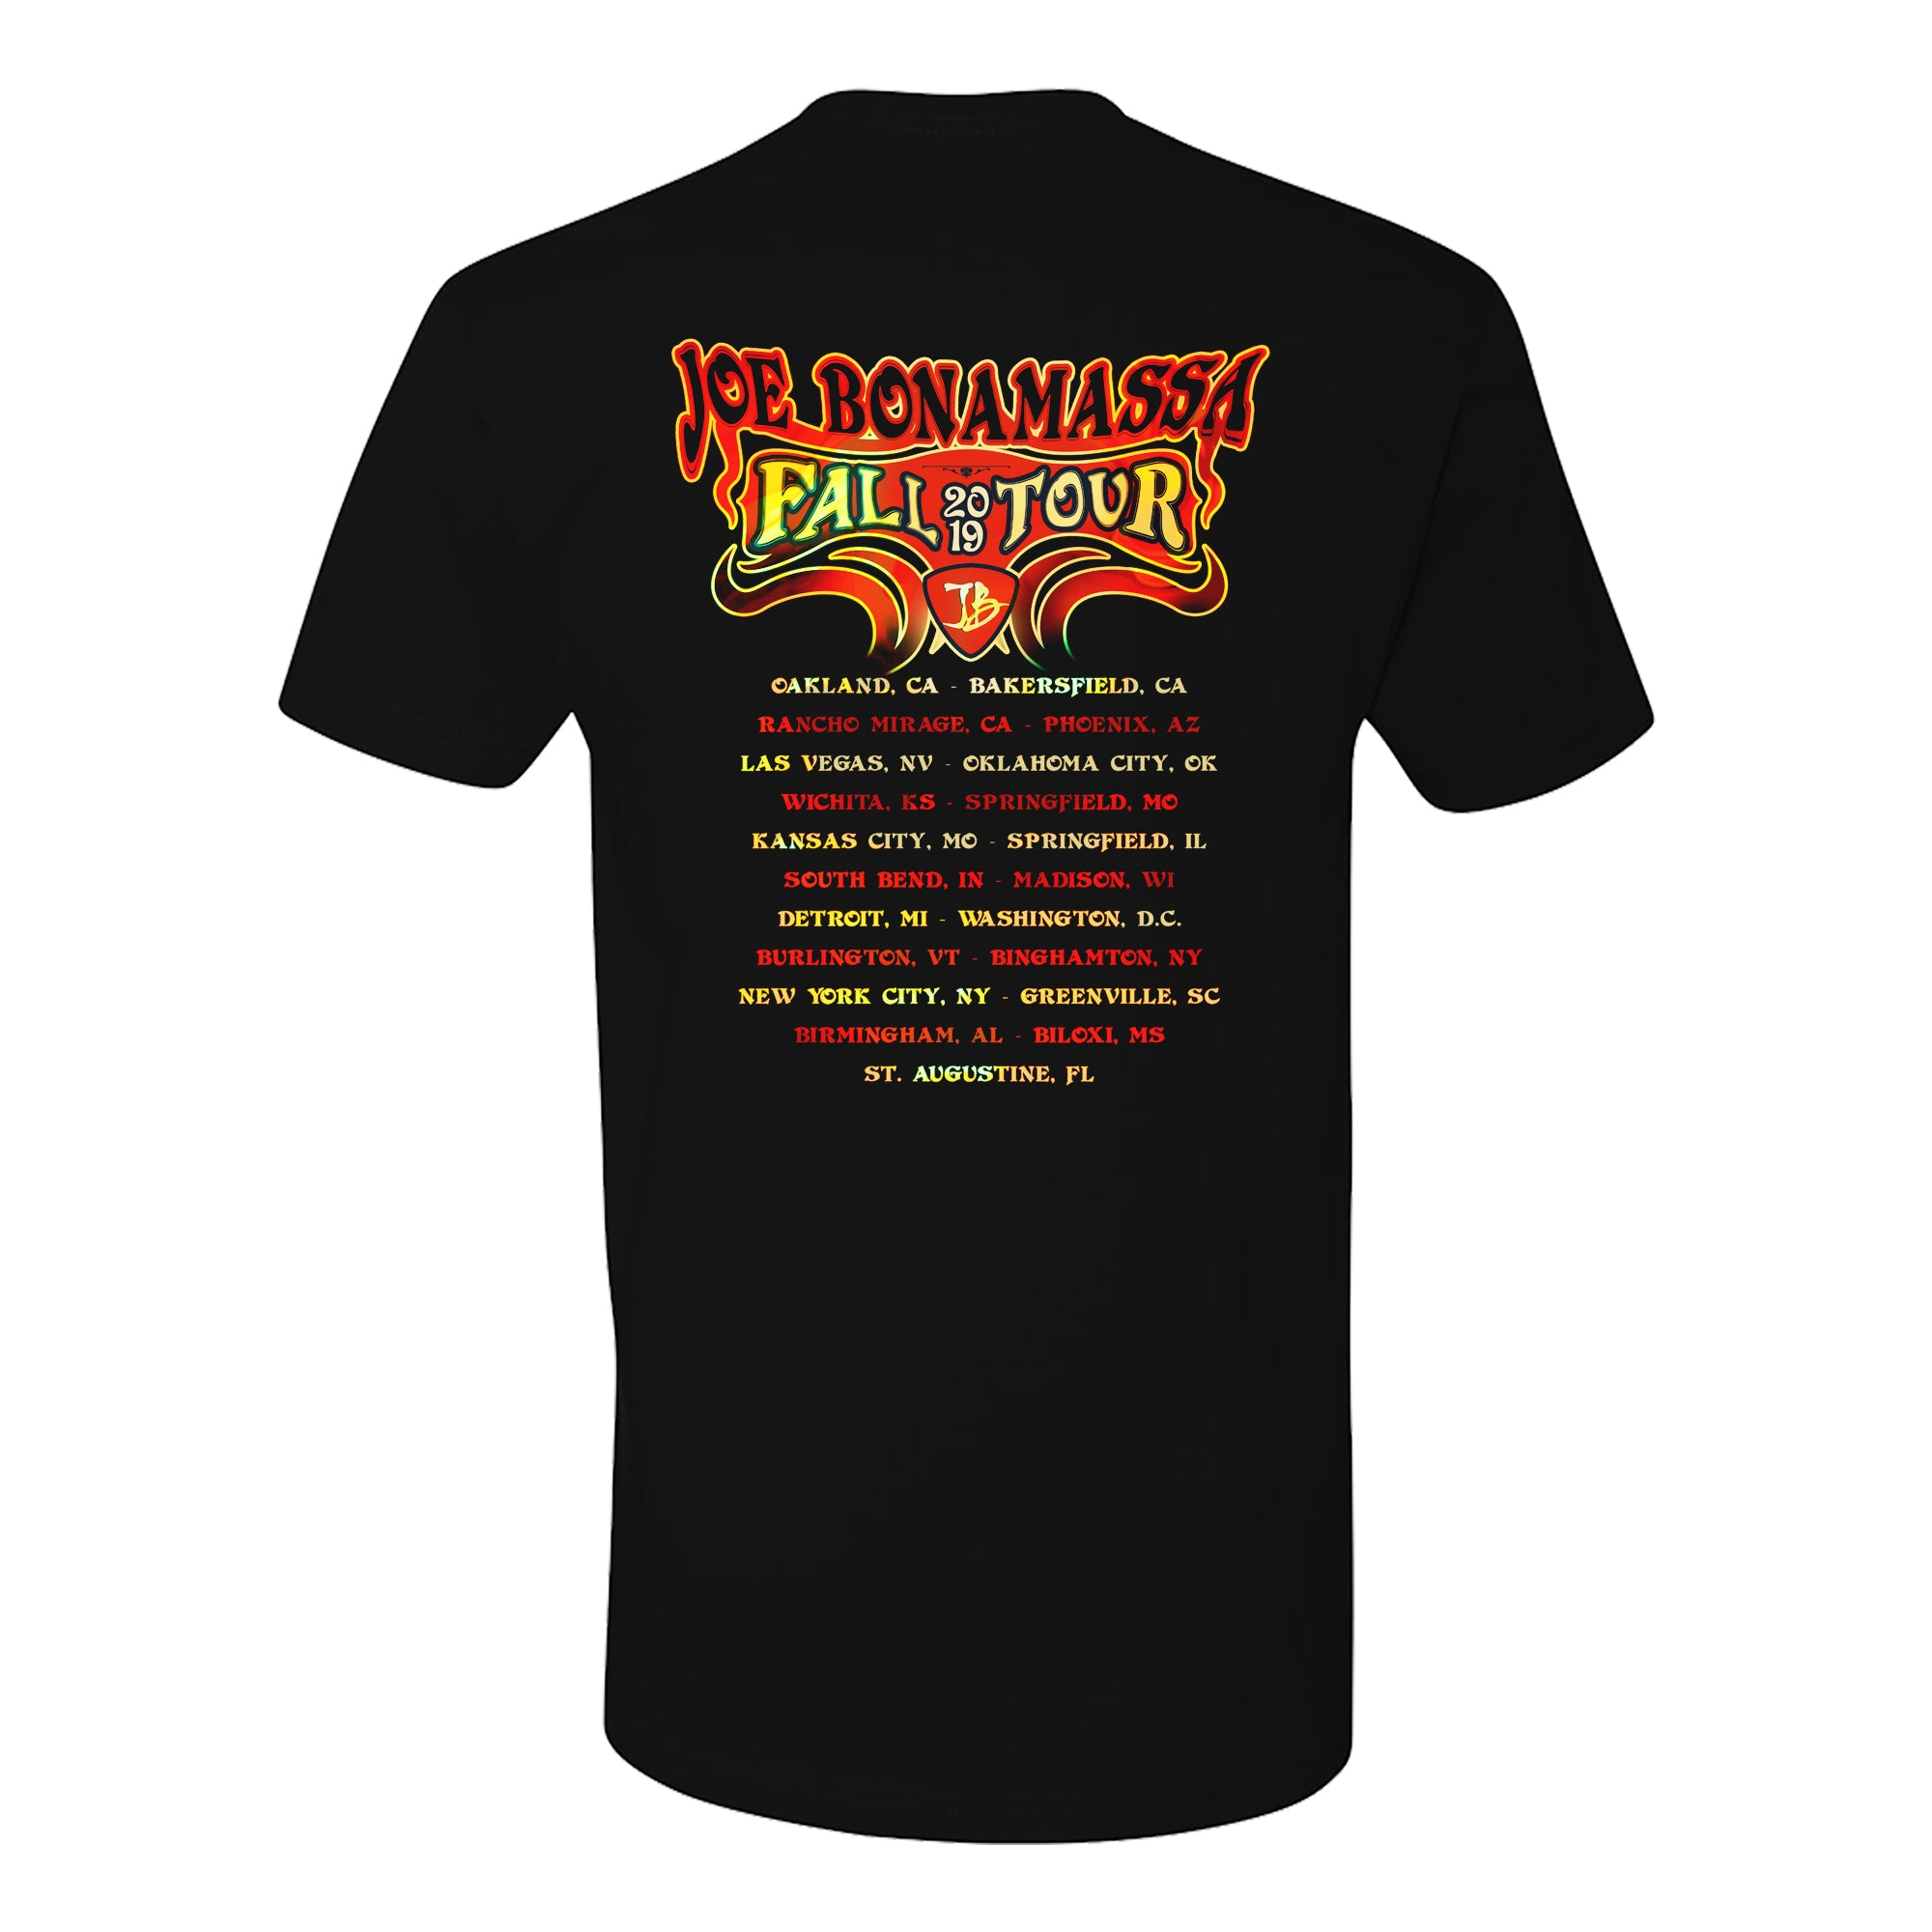 2019 Fall Tour T-Shirt (Unisex) - Psychedelic